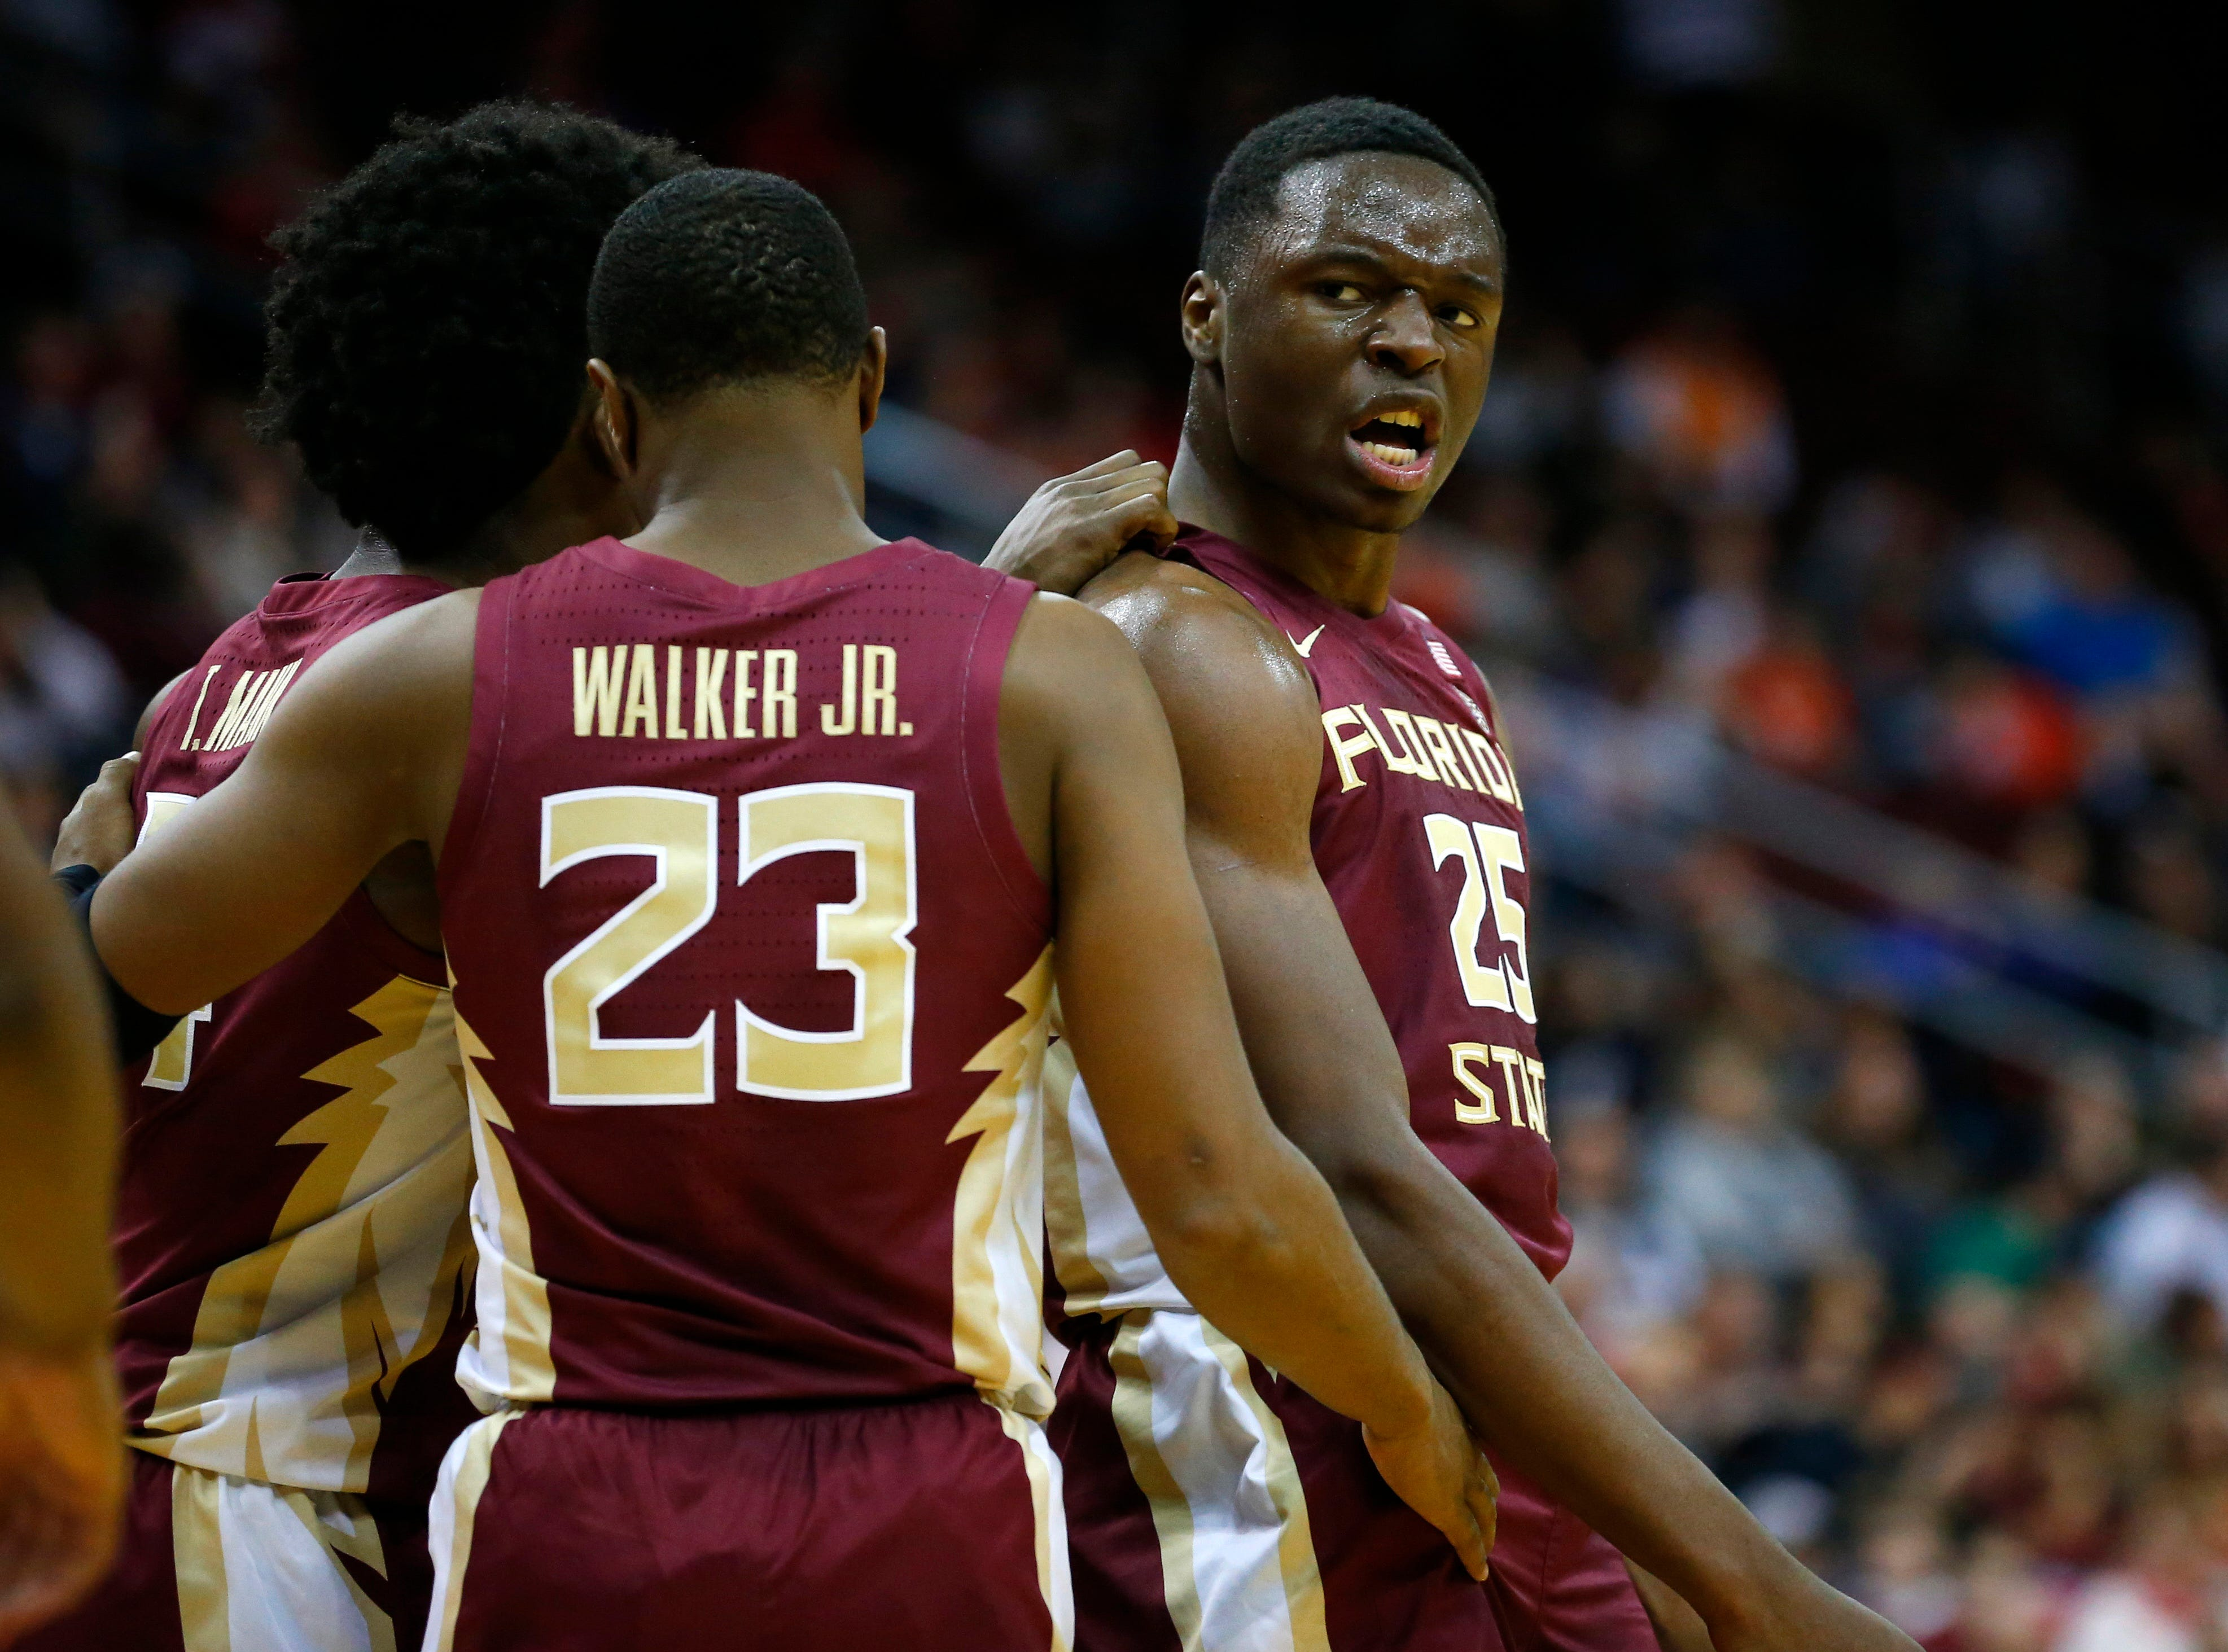 Dec 8, 2018; Newark, NJ, USA; Florida State Seminoles forward Mfiondu Kabengele (25) reacts after scoring against the Connecticut Huskies during the first half at Prudential Center. Mandatory Credit: Noah K. Murray-USA TODAY Sports